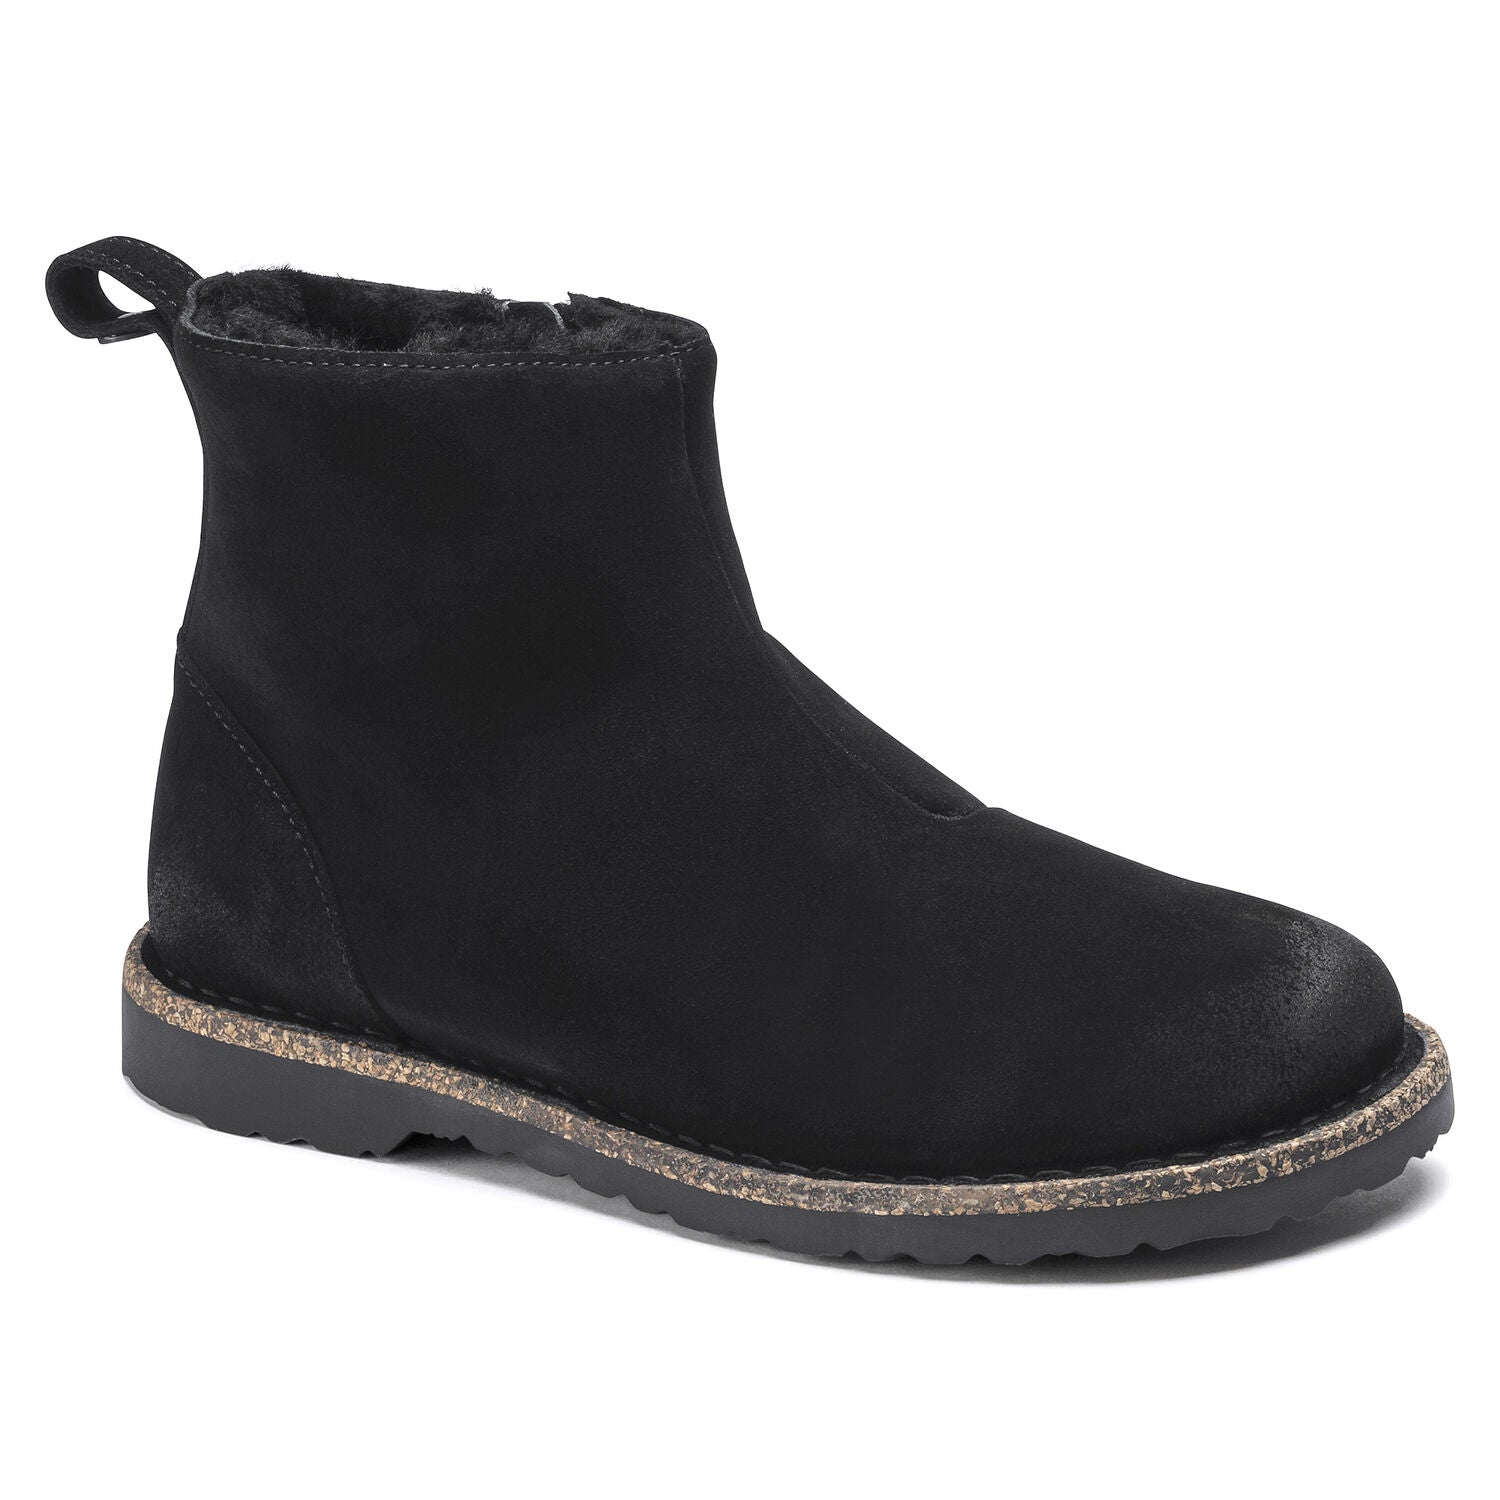 Melrose -  Black Shearling Suede